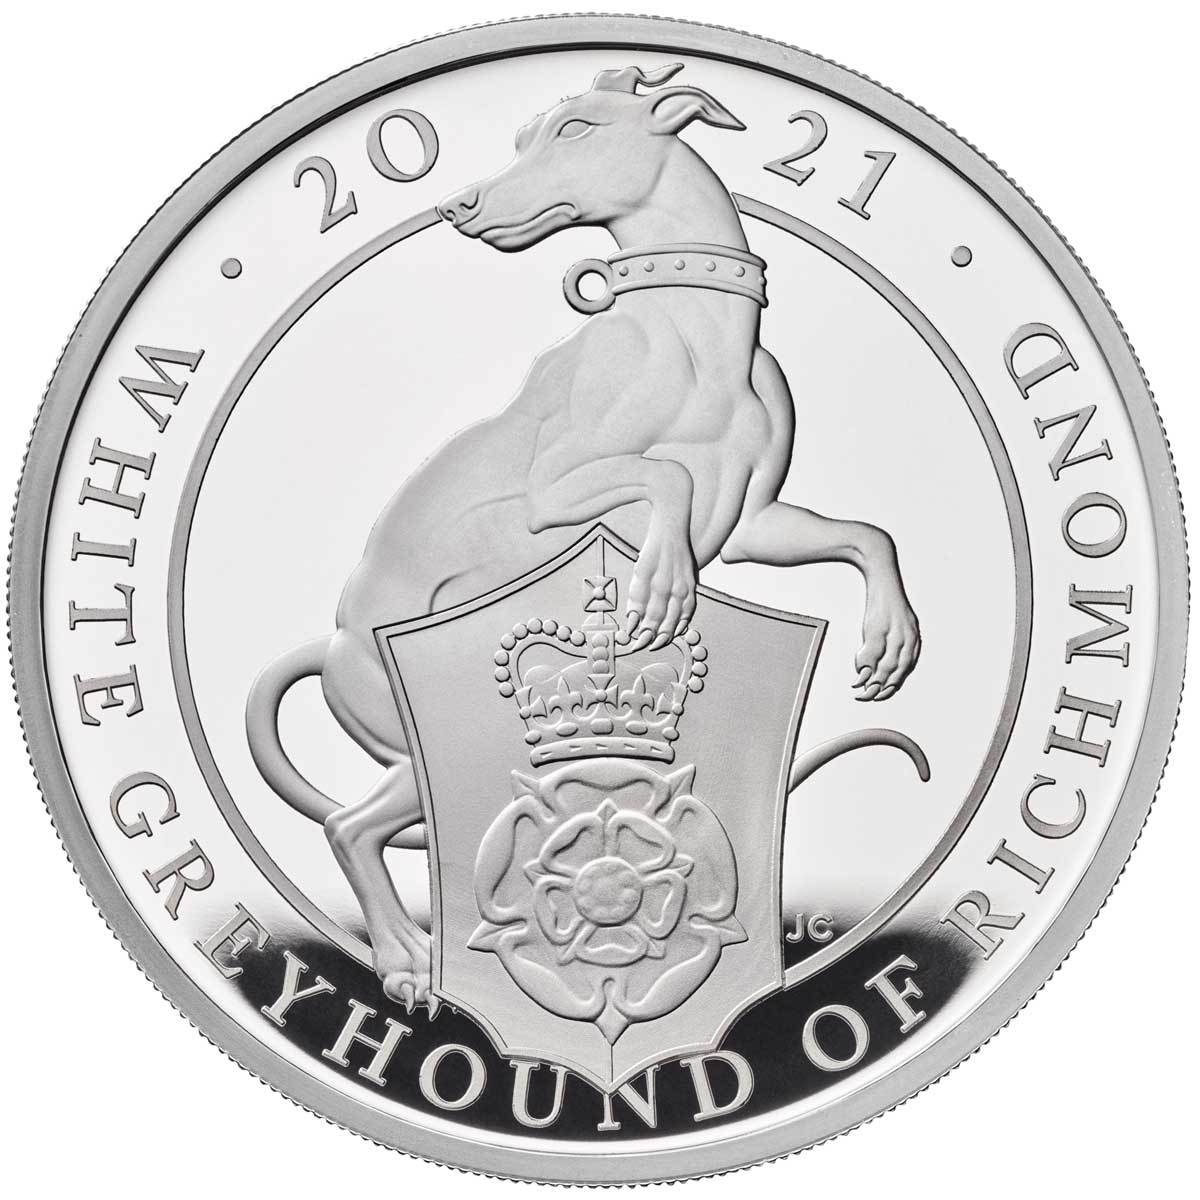 QUEENS BEASTS: THE WHITE GREYHOUND OF RICHMOND 2021 United Kingdom 1oz silver coin